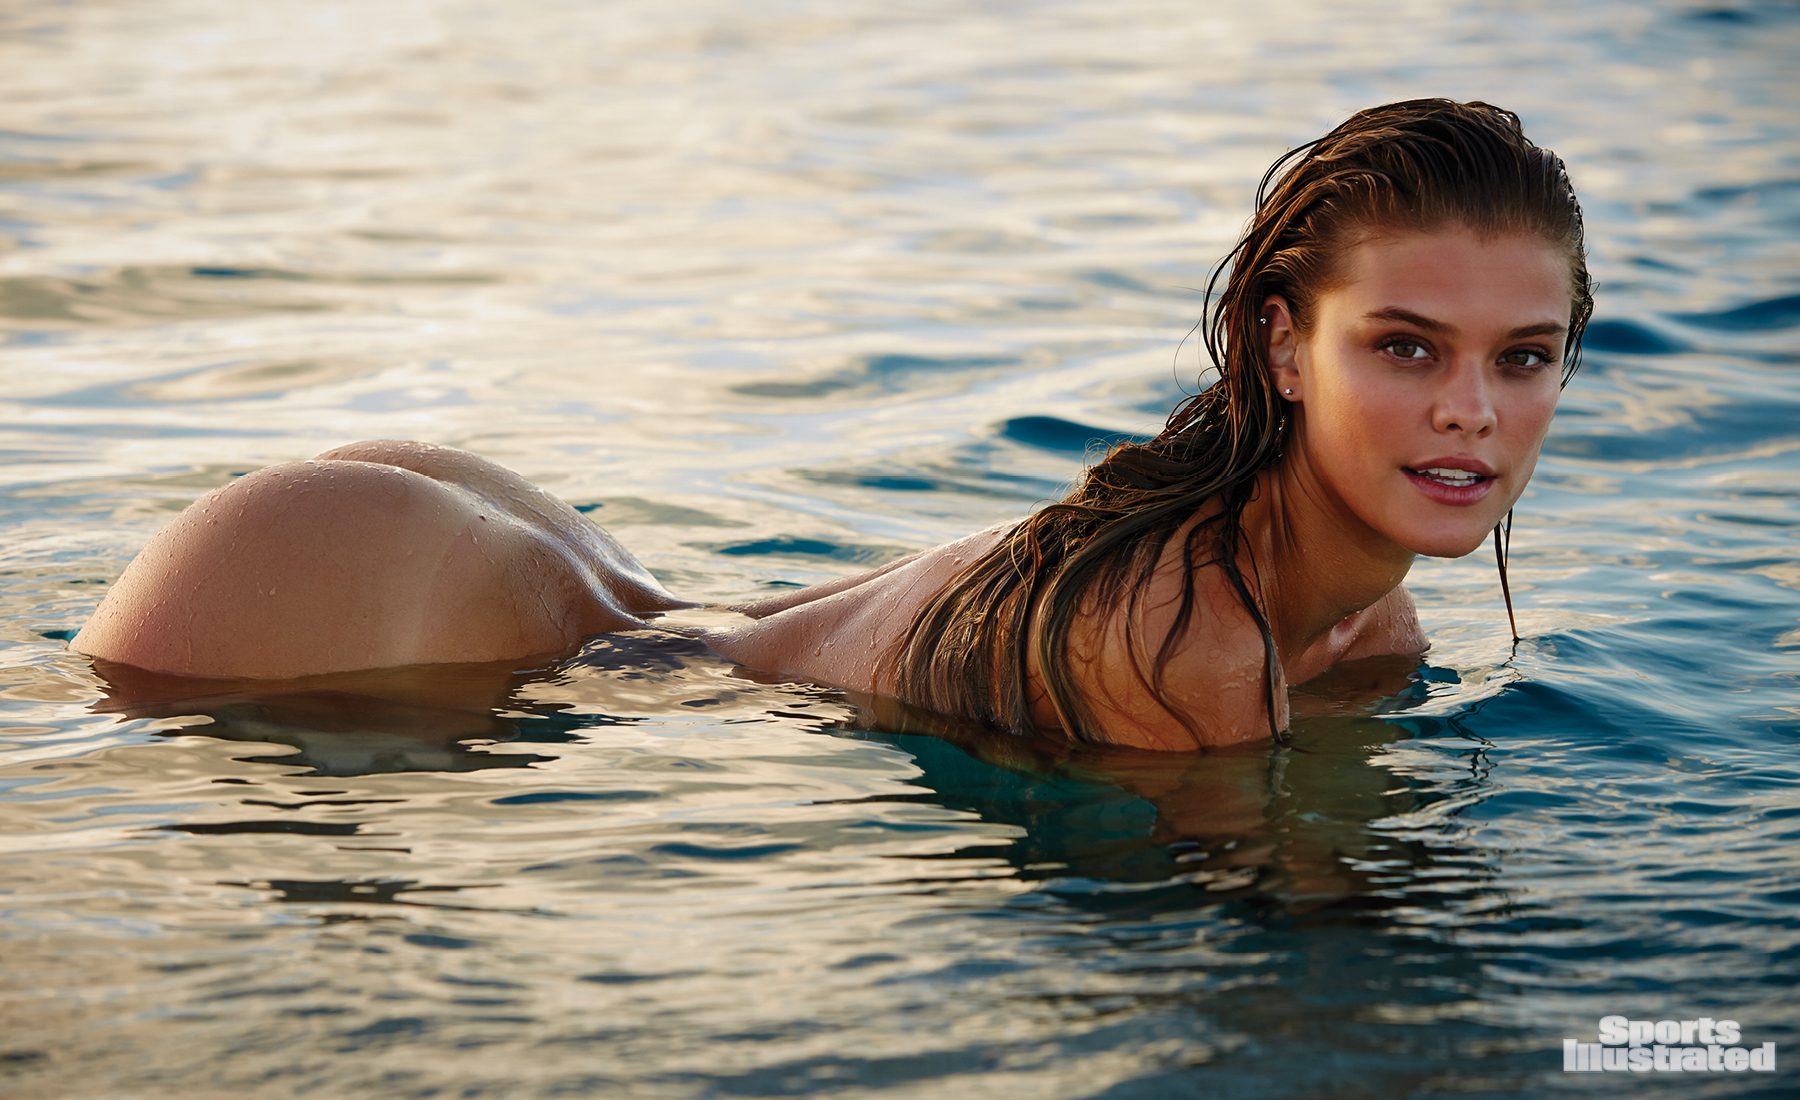 nina-agdal-sports-Illustrated-swimsuit-2014-outtakes-11